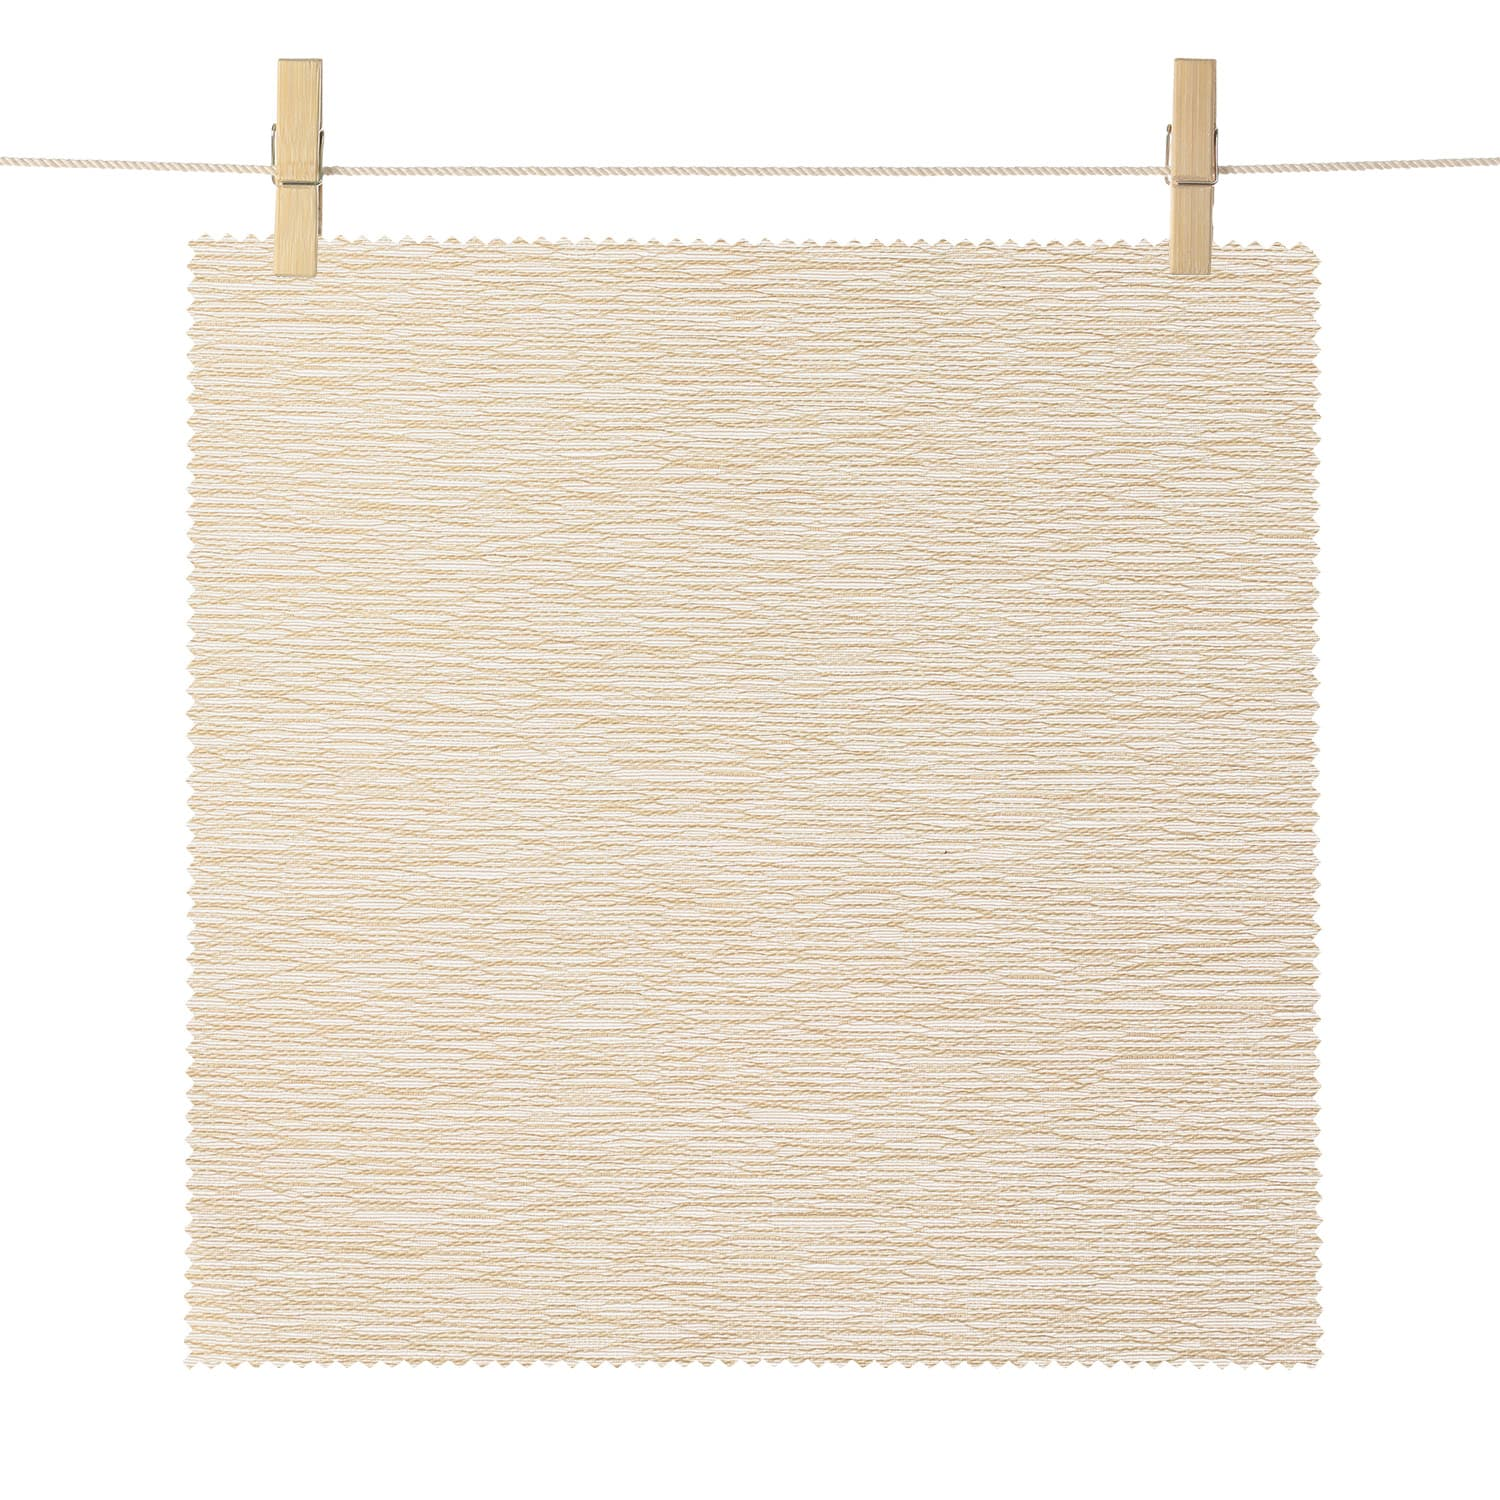 Portola Beige Faille Rib Textured Light Filtering Roller Shade Swatch